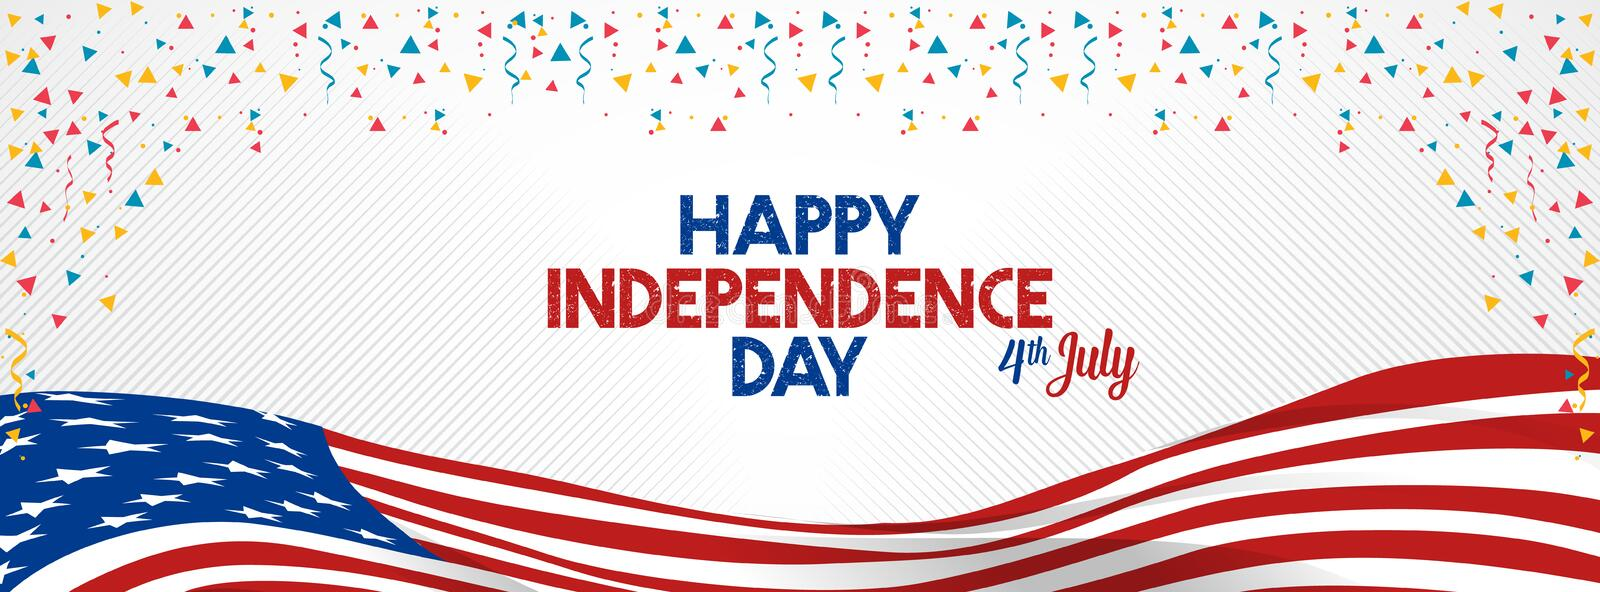 4th july Happy Independence day United State America stock illustration